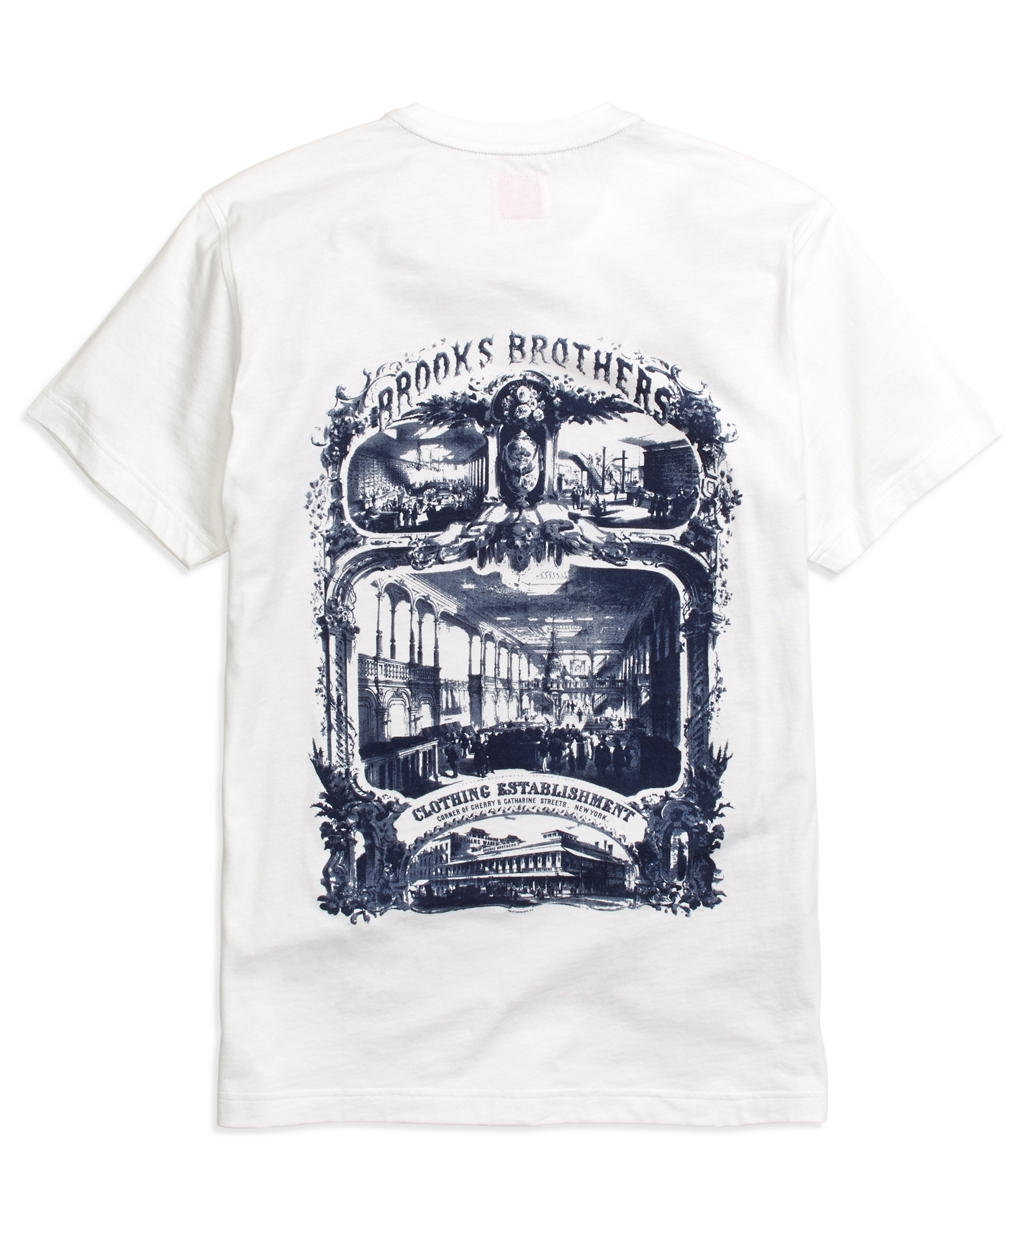 Brooks brothers vintage print tee shirt in white for men Brooks brothers shirt size guide